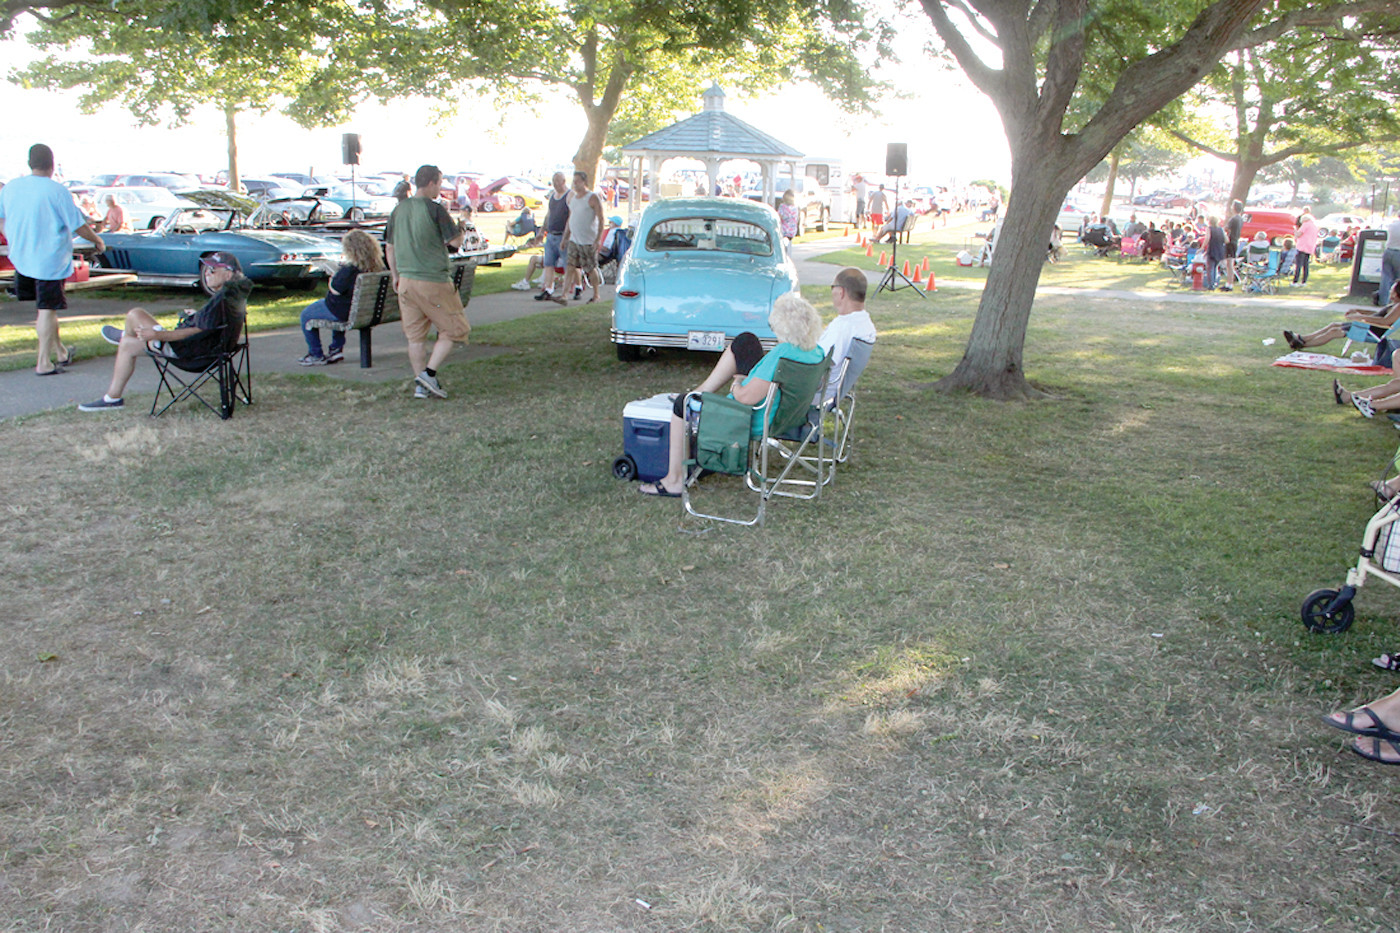 EVENING ENJOYMENT: Whether they bring a car or not, folks bring their lawn chairs and enjoy the cruise scene.